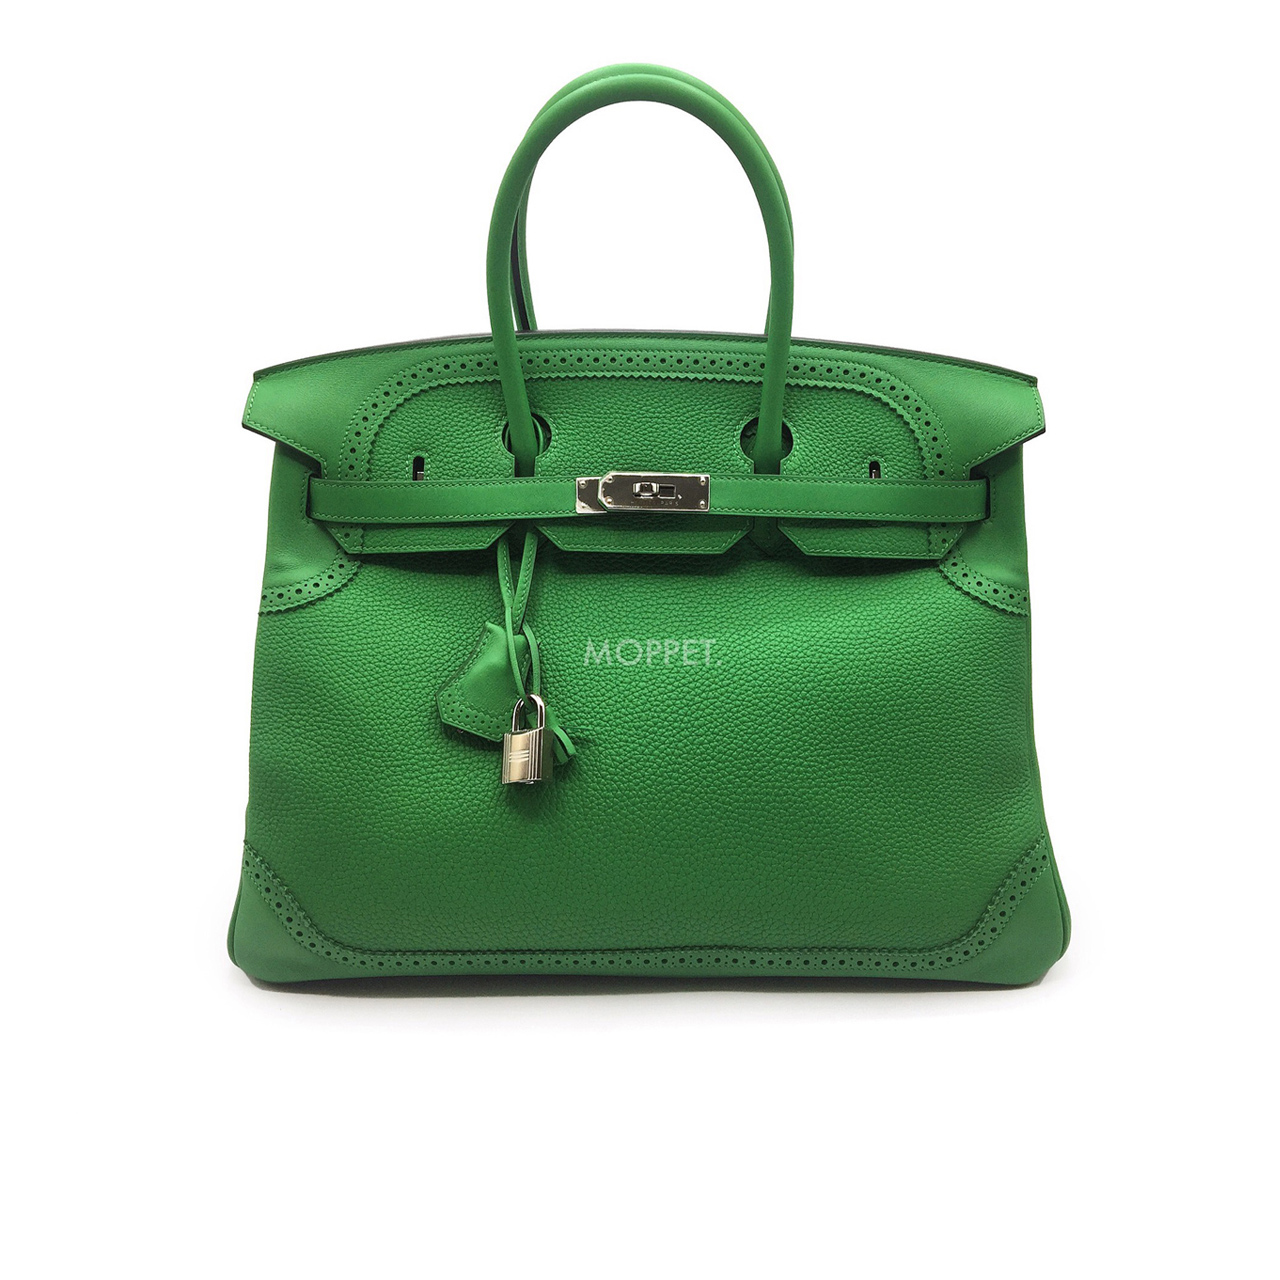 "Used Hermes Birkin Ghillies 35"" in Bamboo Togo/Swift SHW"